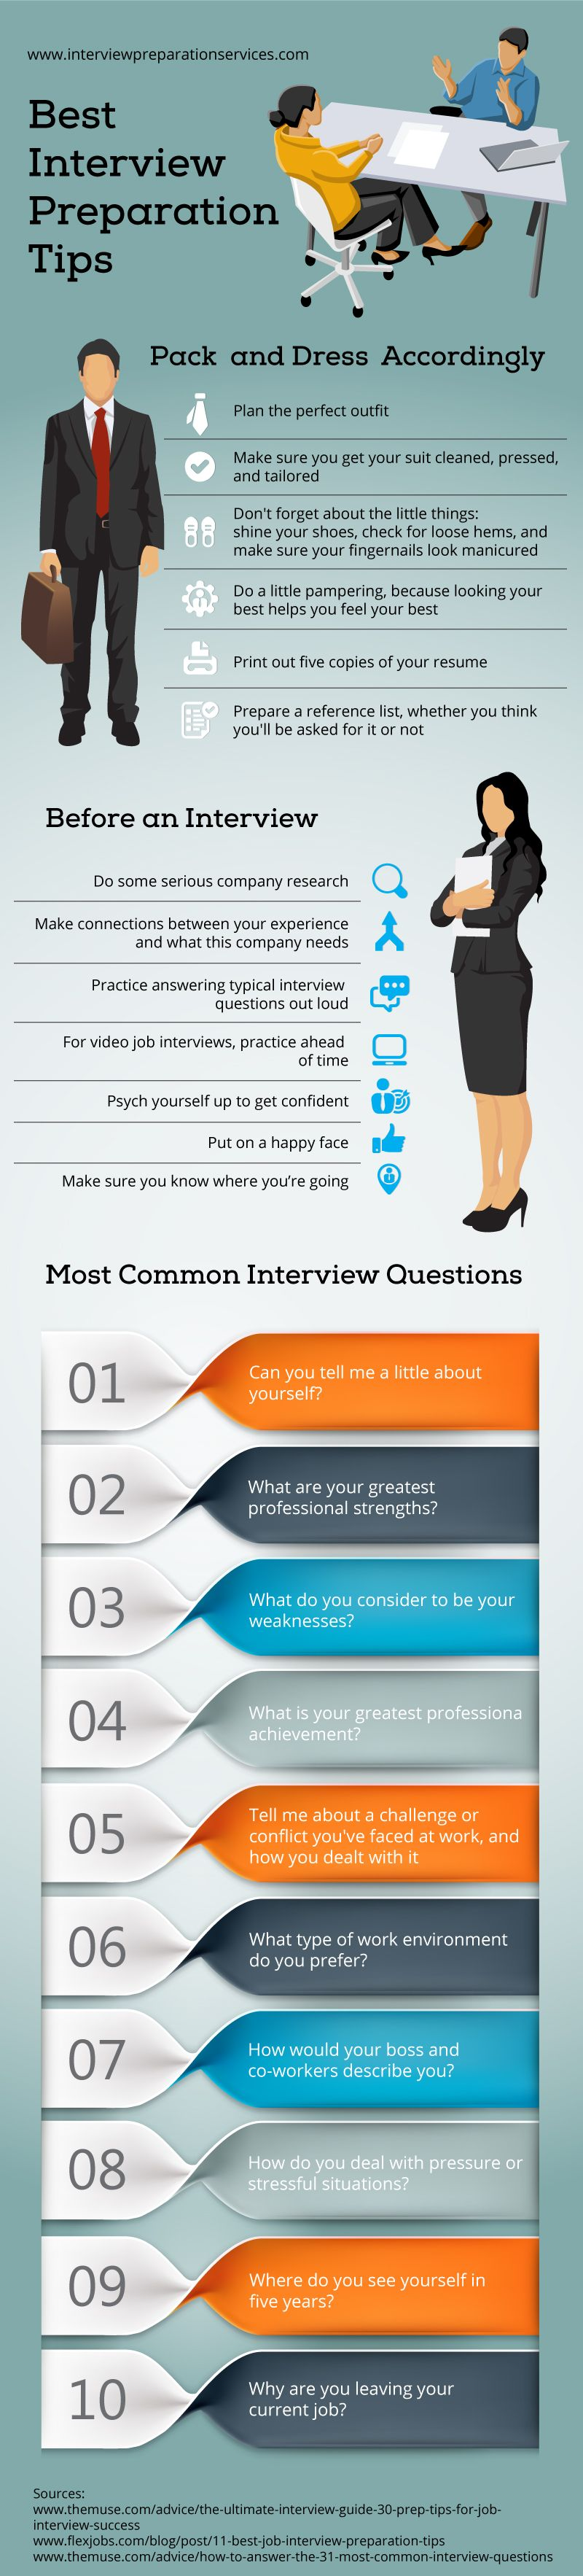 All in One Place: The Best Job Interview Preparation Tips ...